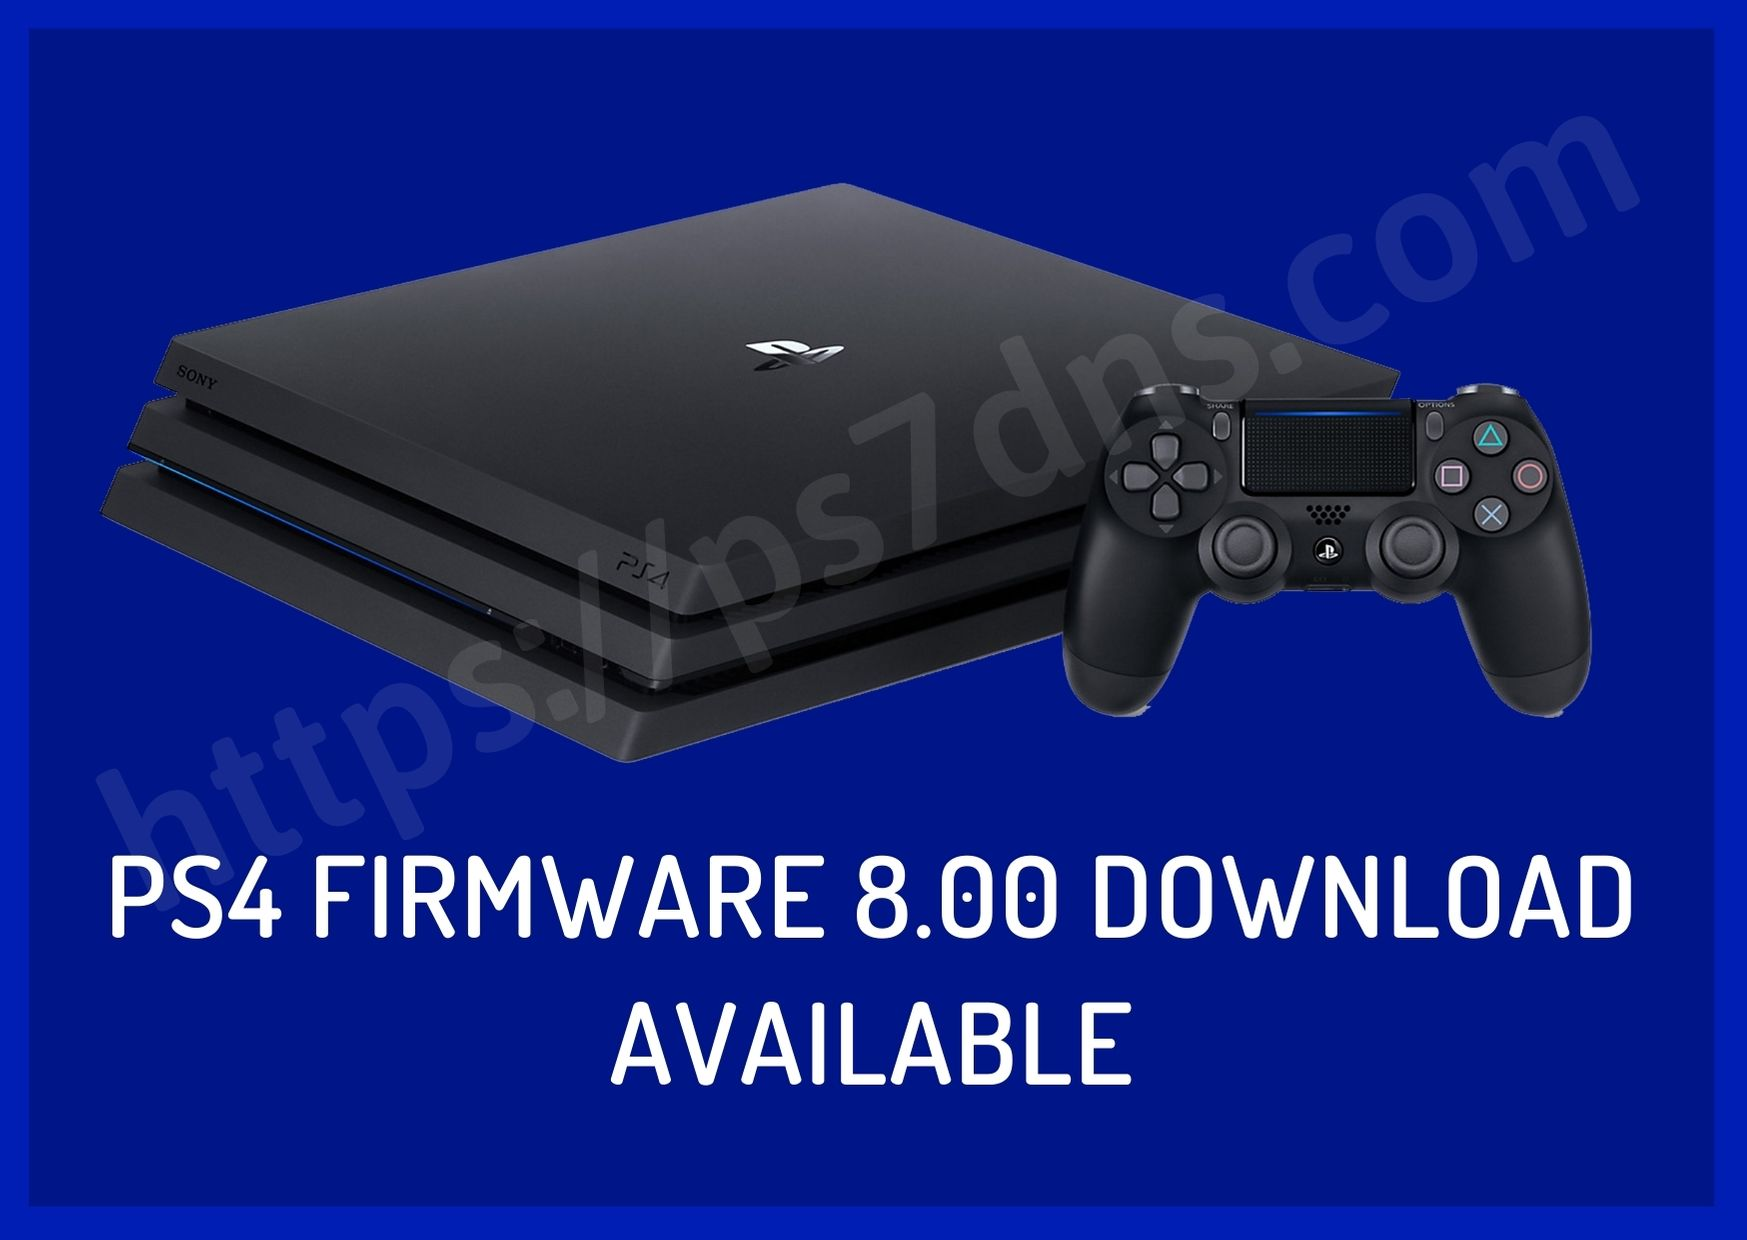 PS4 Firmware 8.00 Download Available